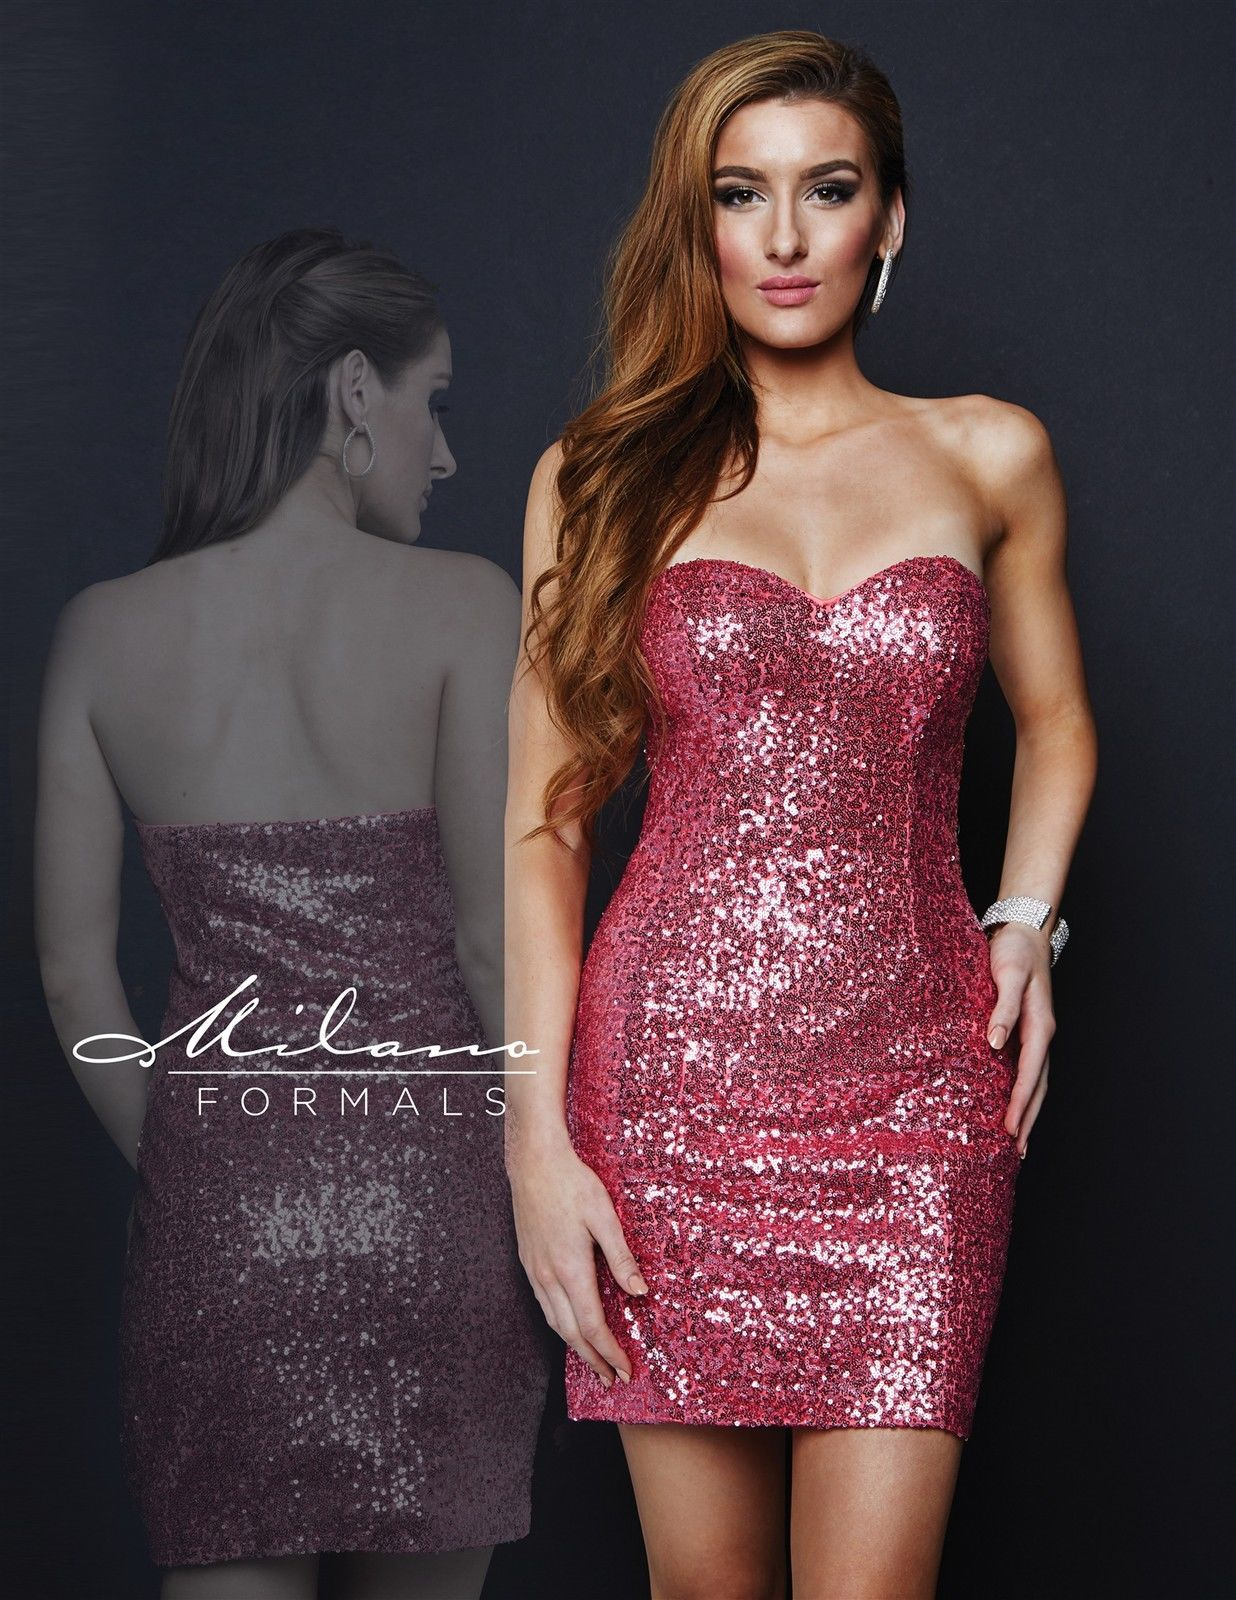 Image 1 of Milano Formals E1670 Light Fuchsia Pink Sequins Strapless Party Mini Dress 12